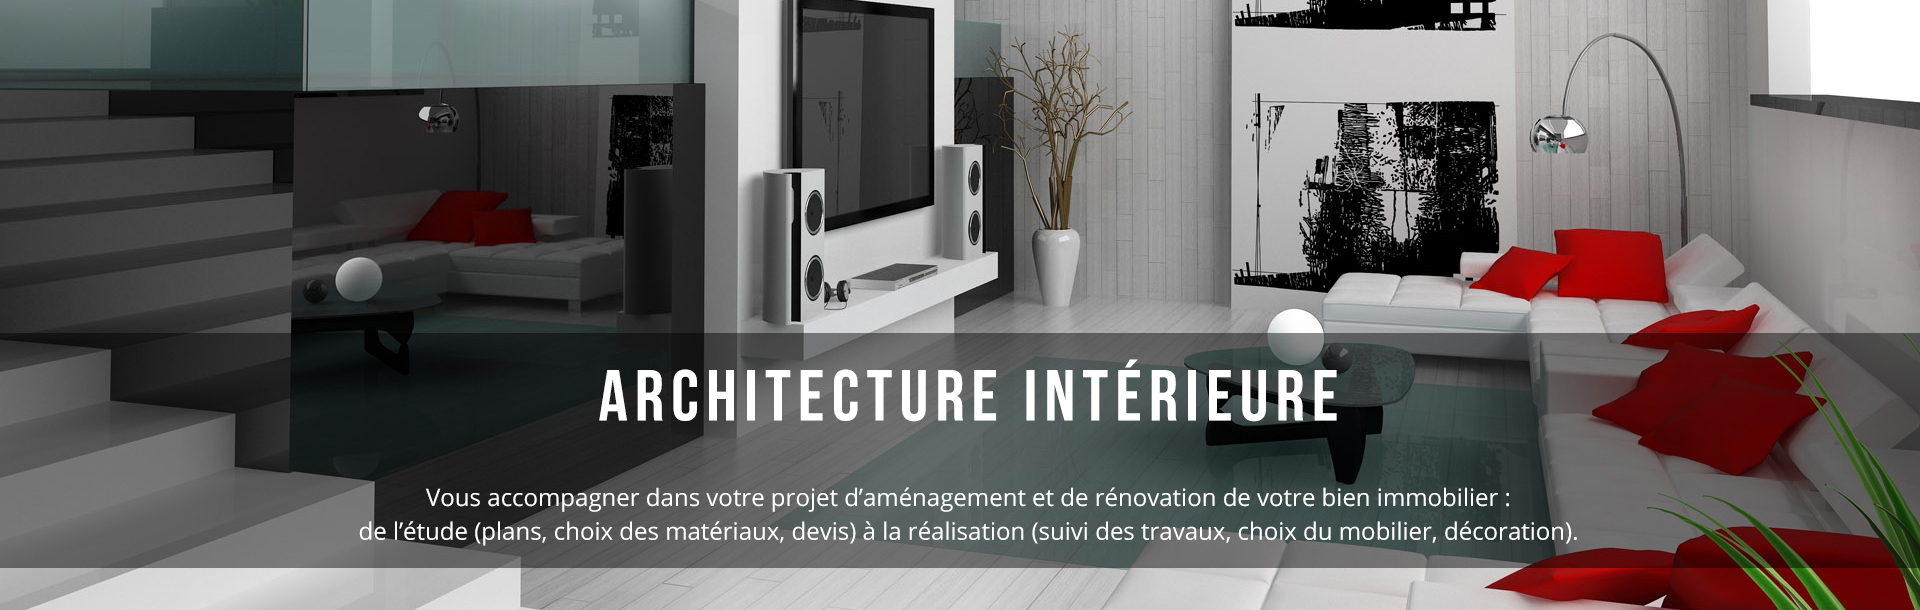 dcoration intrieure rnovation intrieure agencement intrieur nilvange metz hayange thionville moselle lorraine rd2c interieur